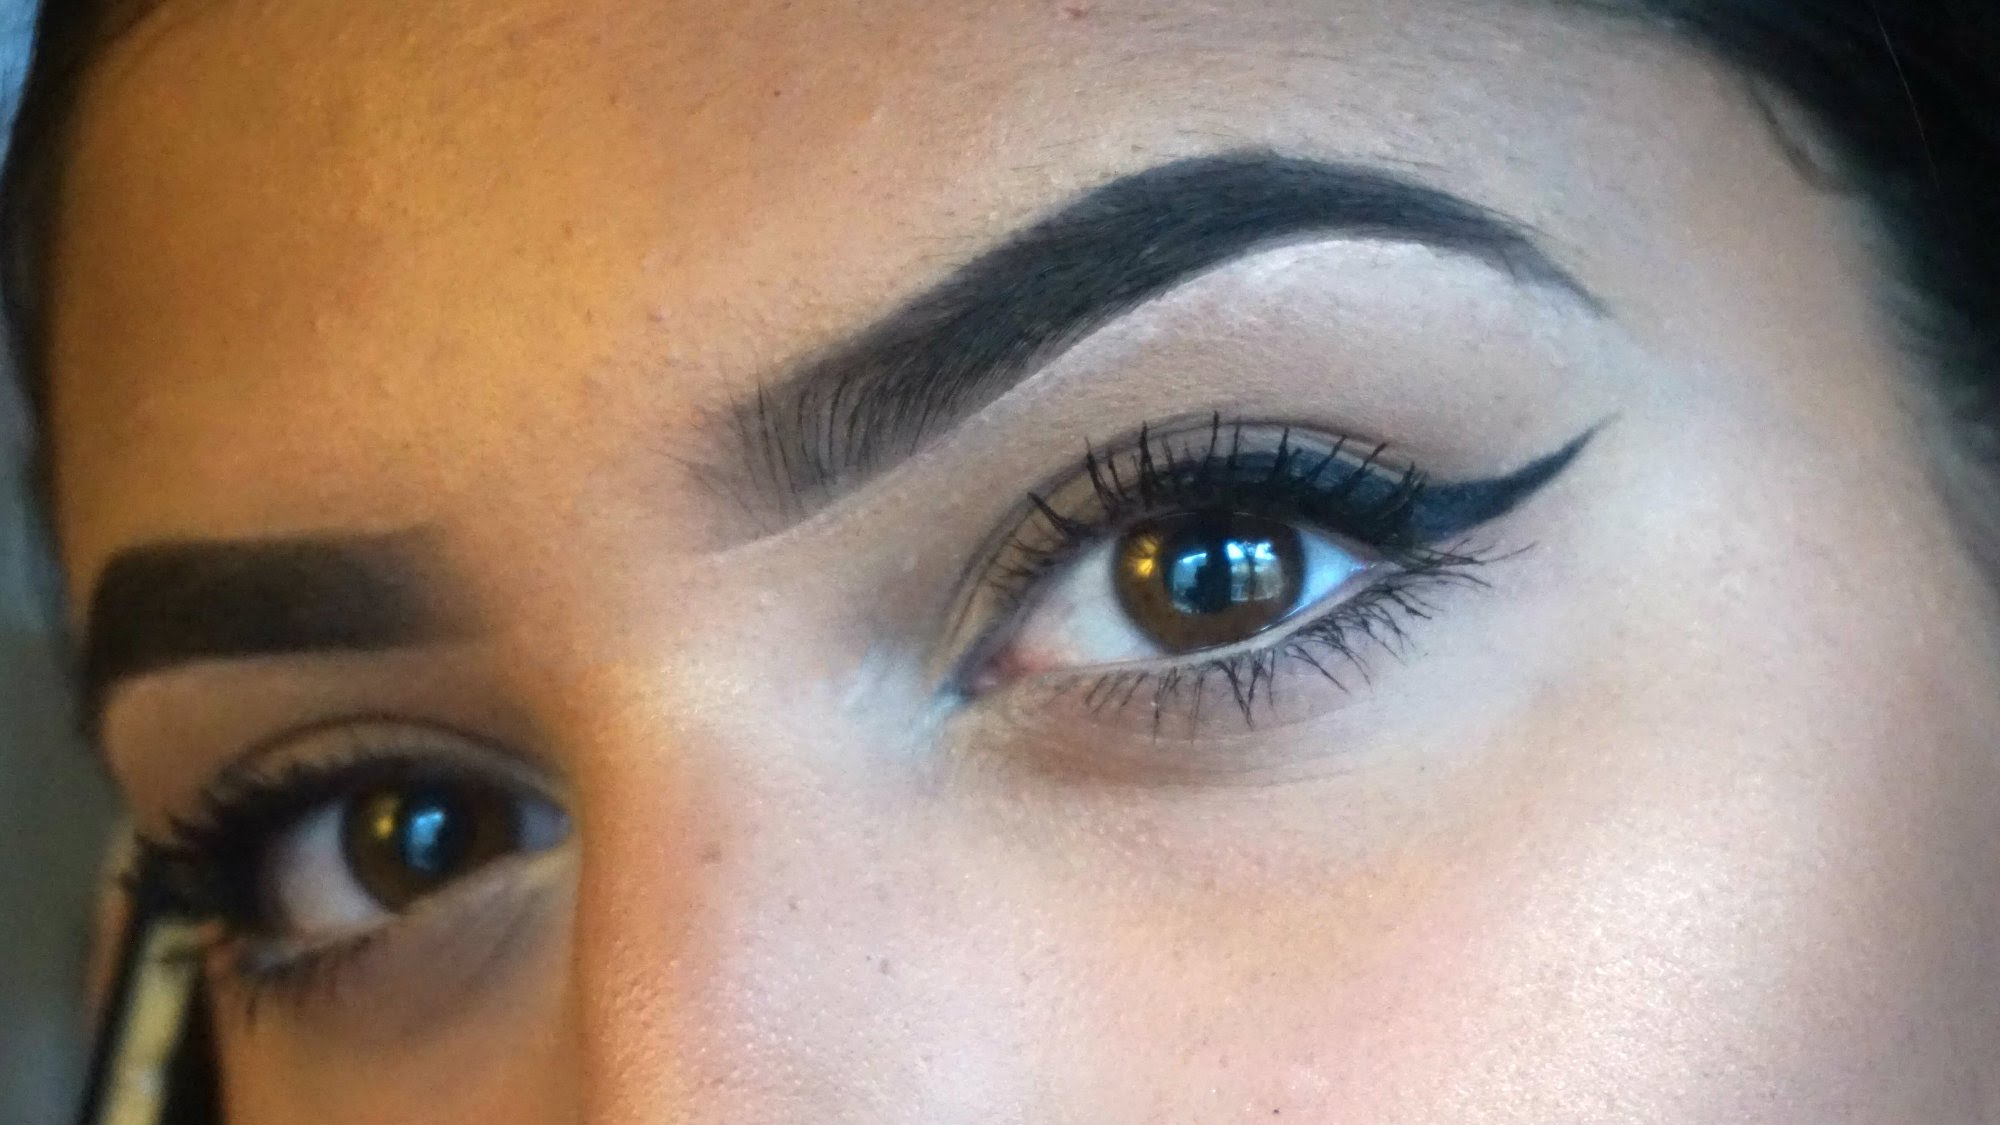 Nervous? Don't be! Here's what to expect a microblading appointment